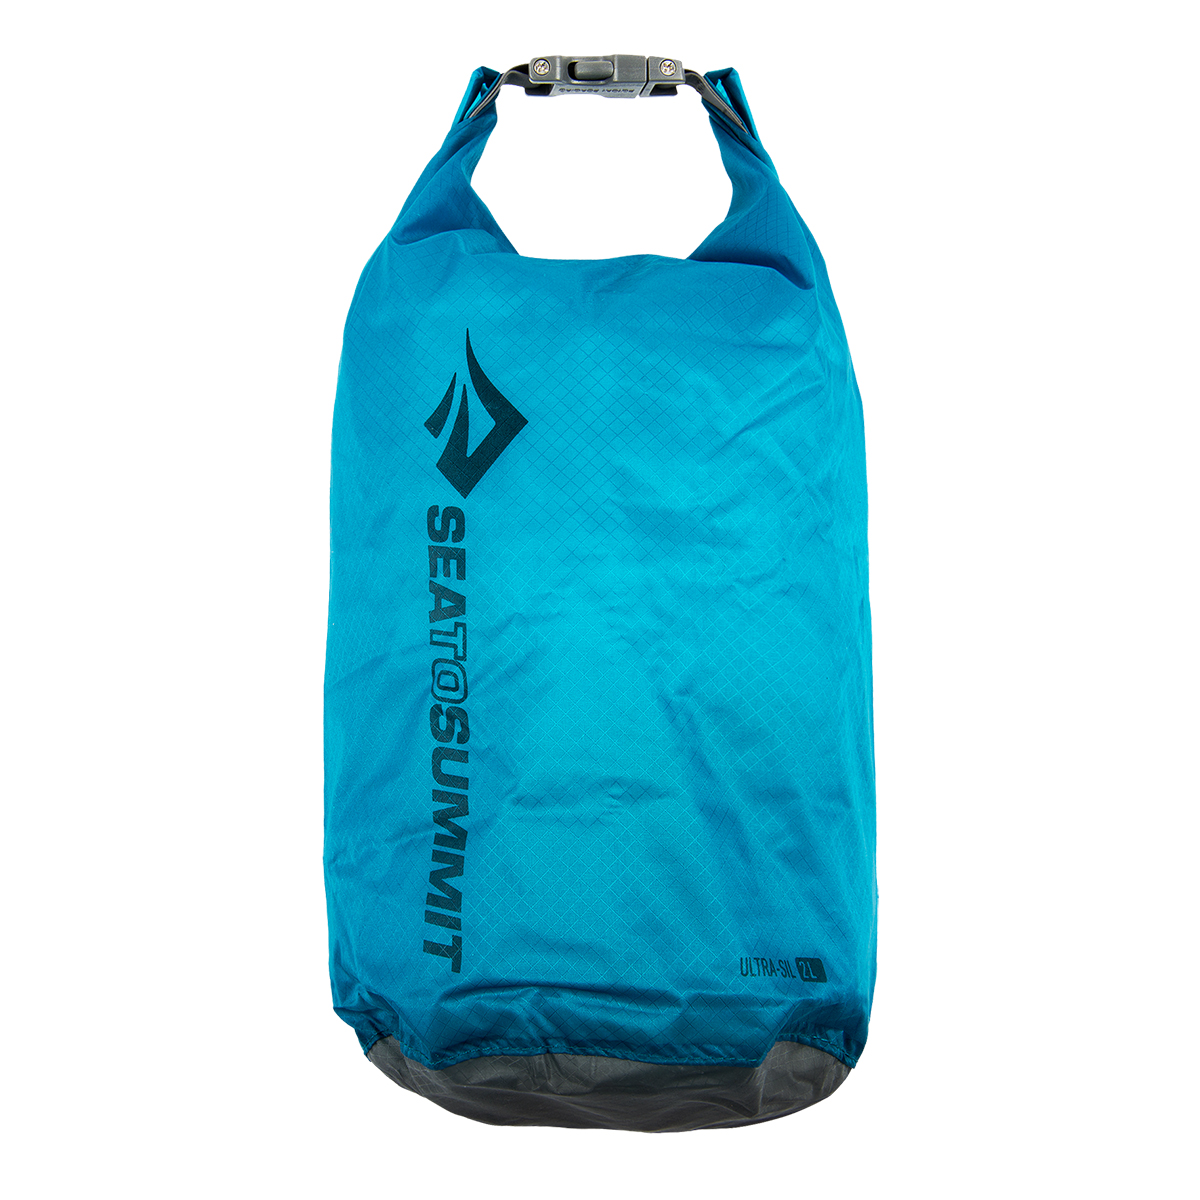 SEA TO SUMMIT Ultra-Sil Drysack 2 Liter Blau im Pareyshop